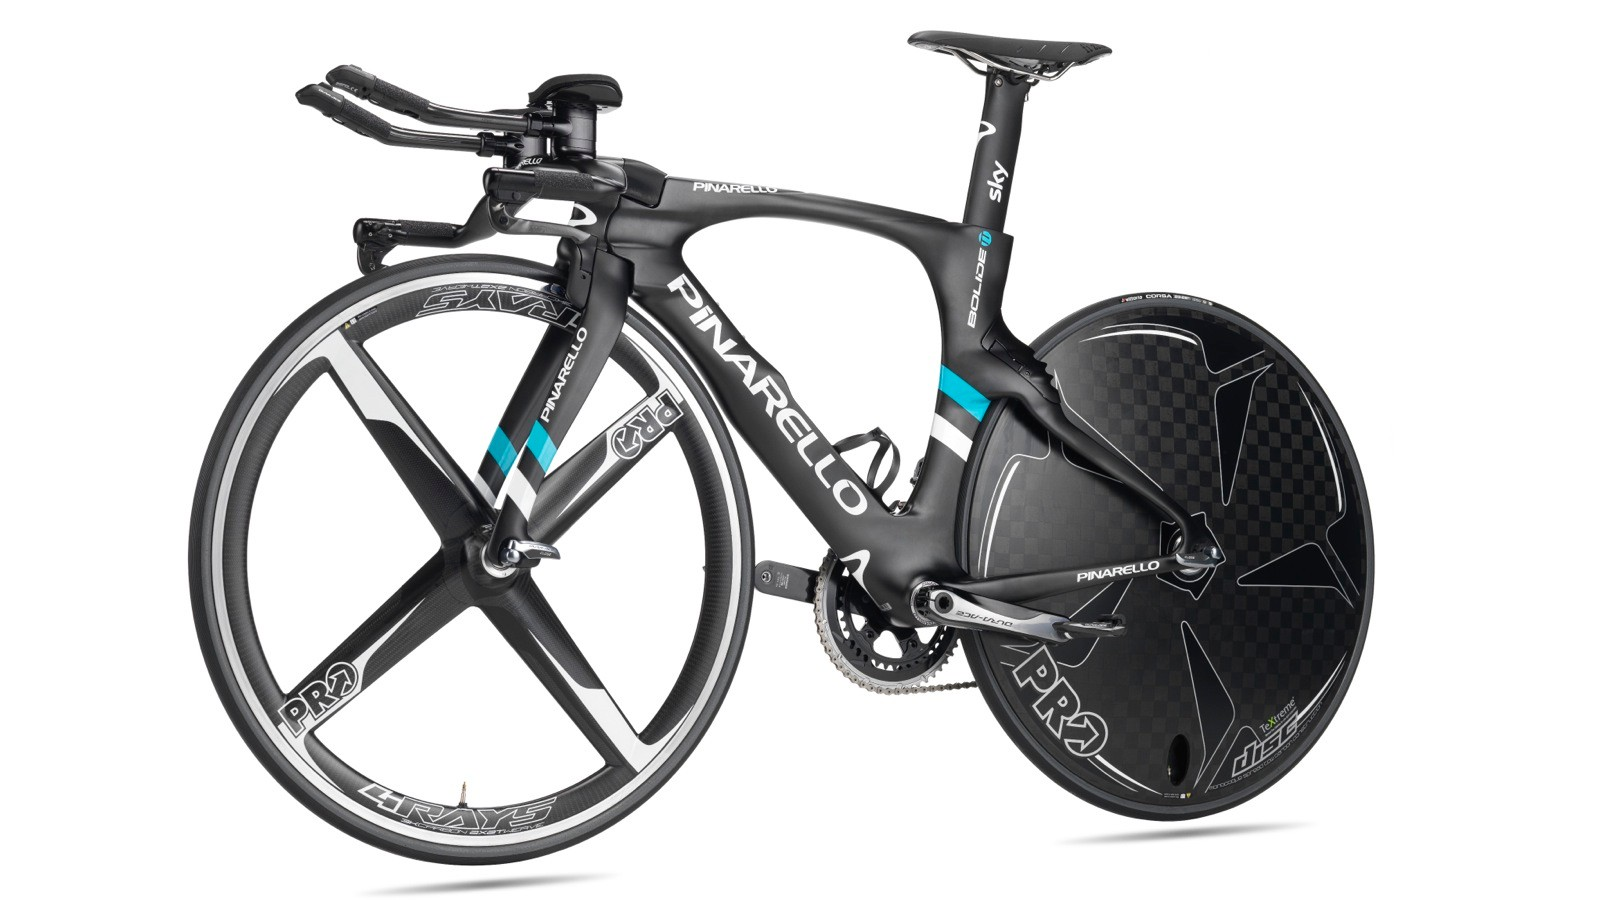 The new Pinarello Bolide TT frameset